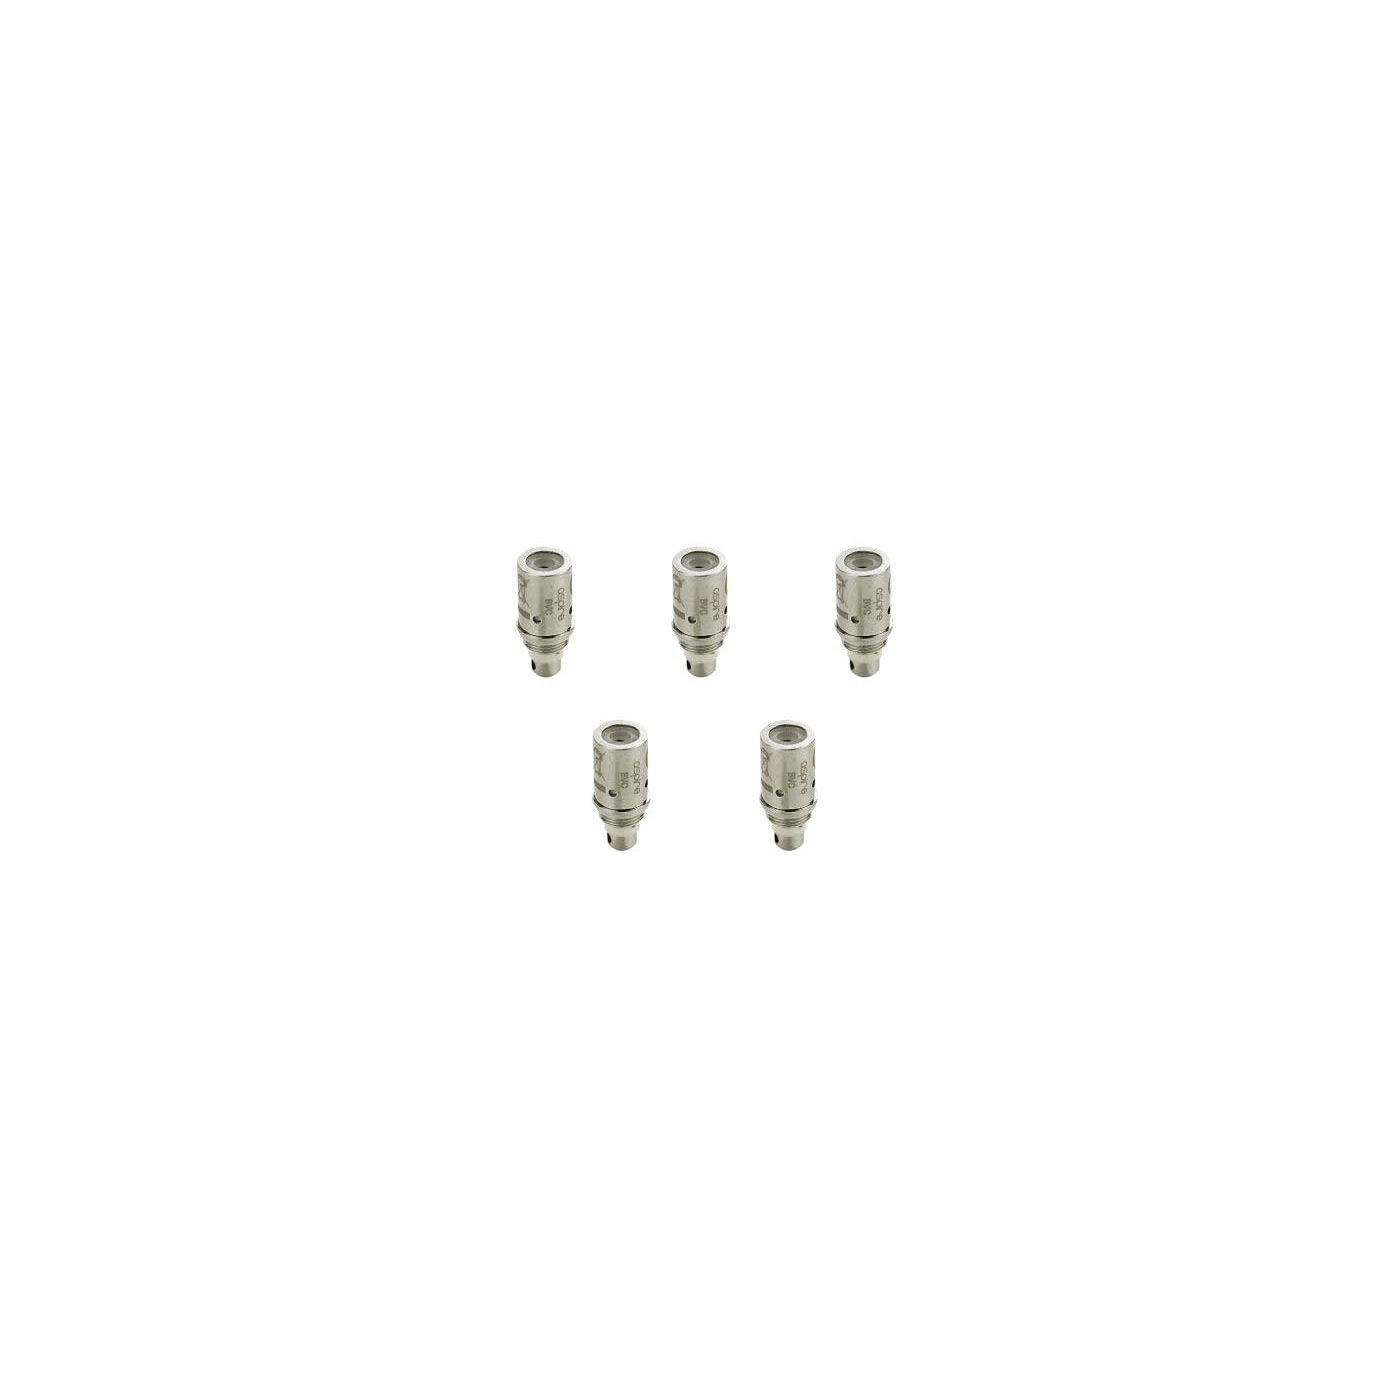 Aspire BVC Replacement Heads